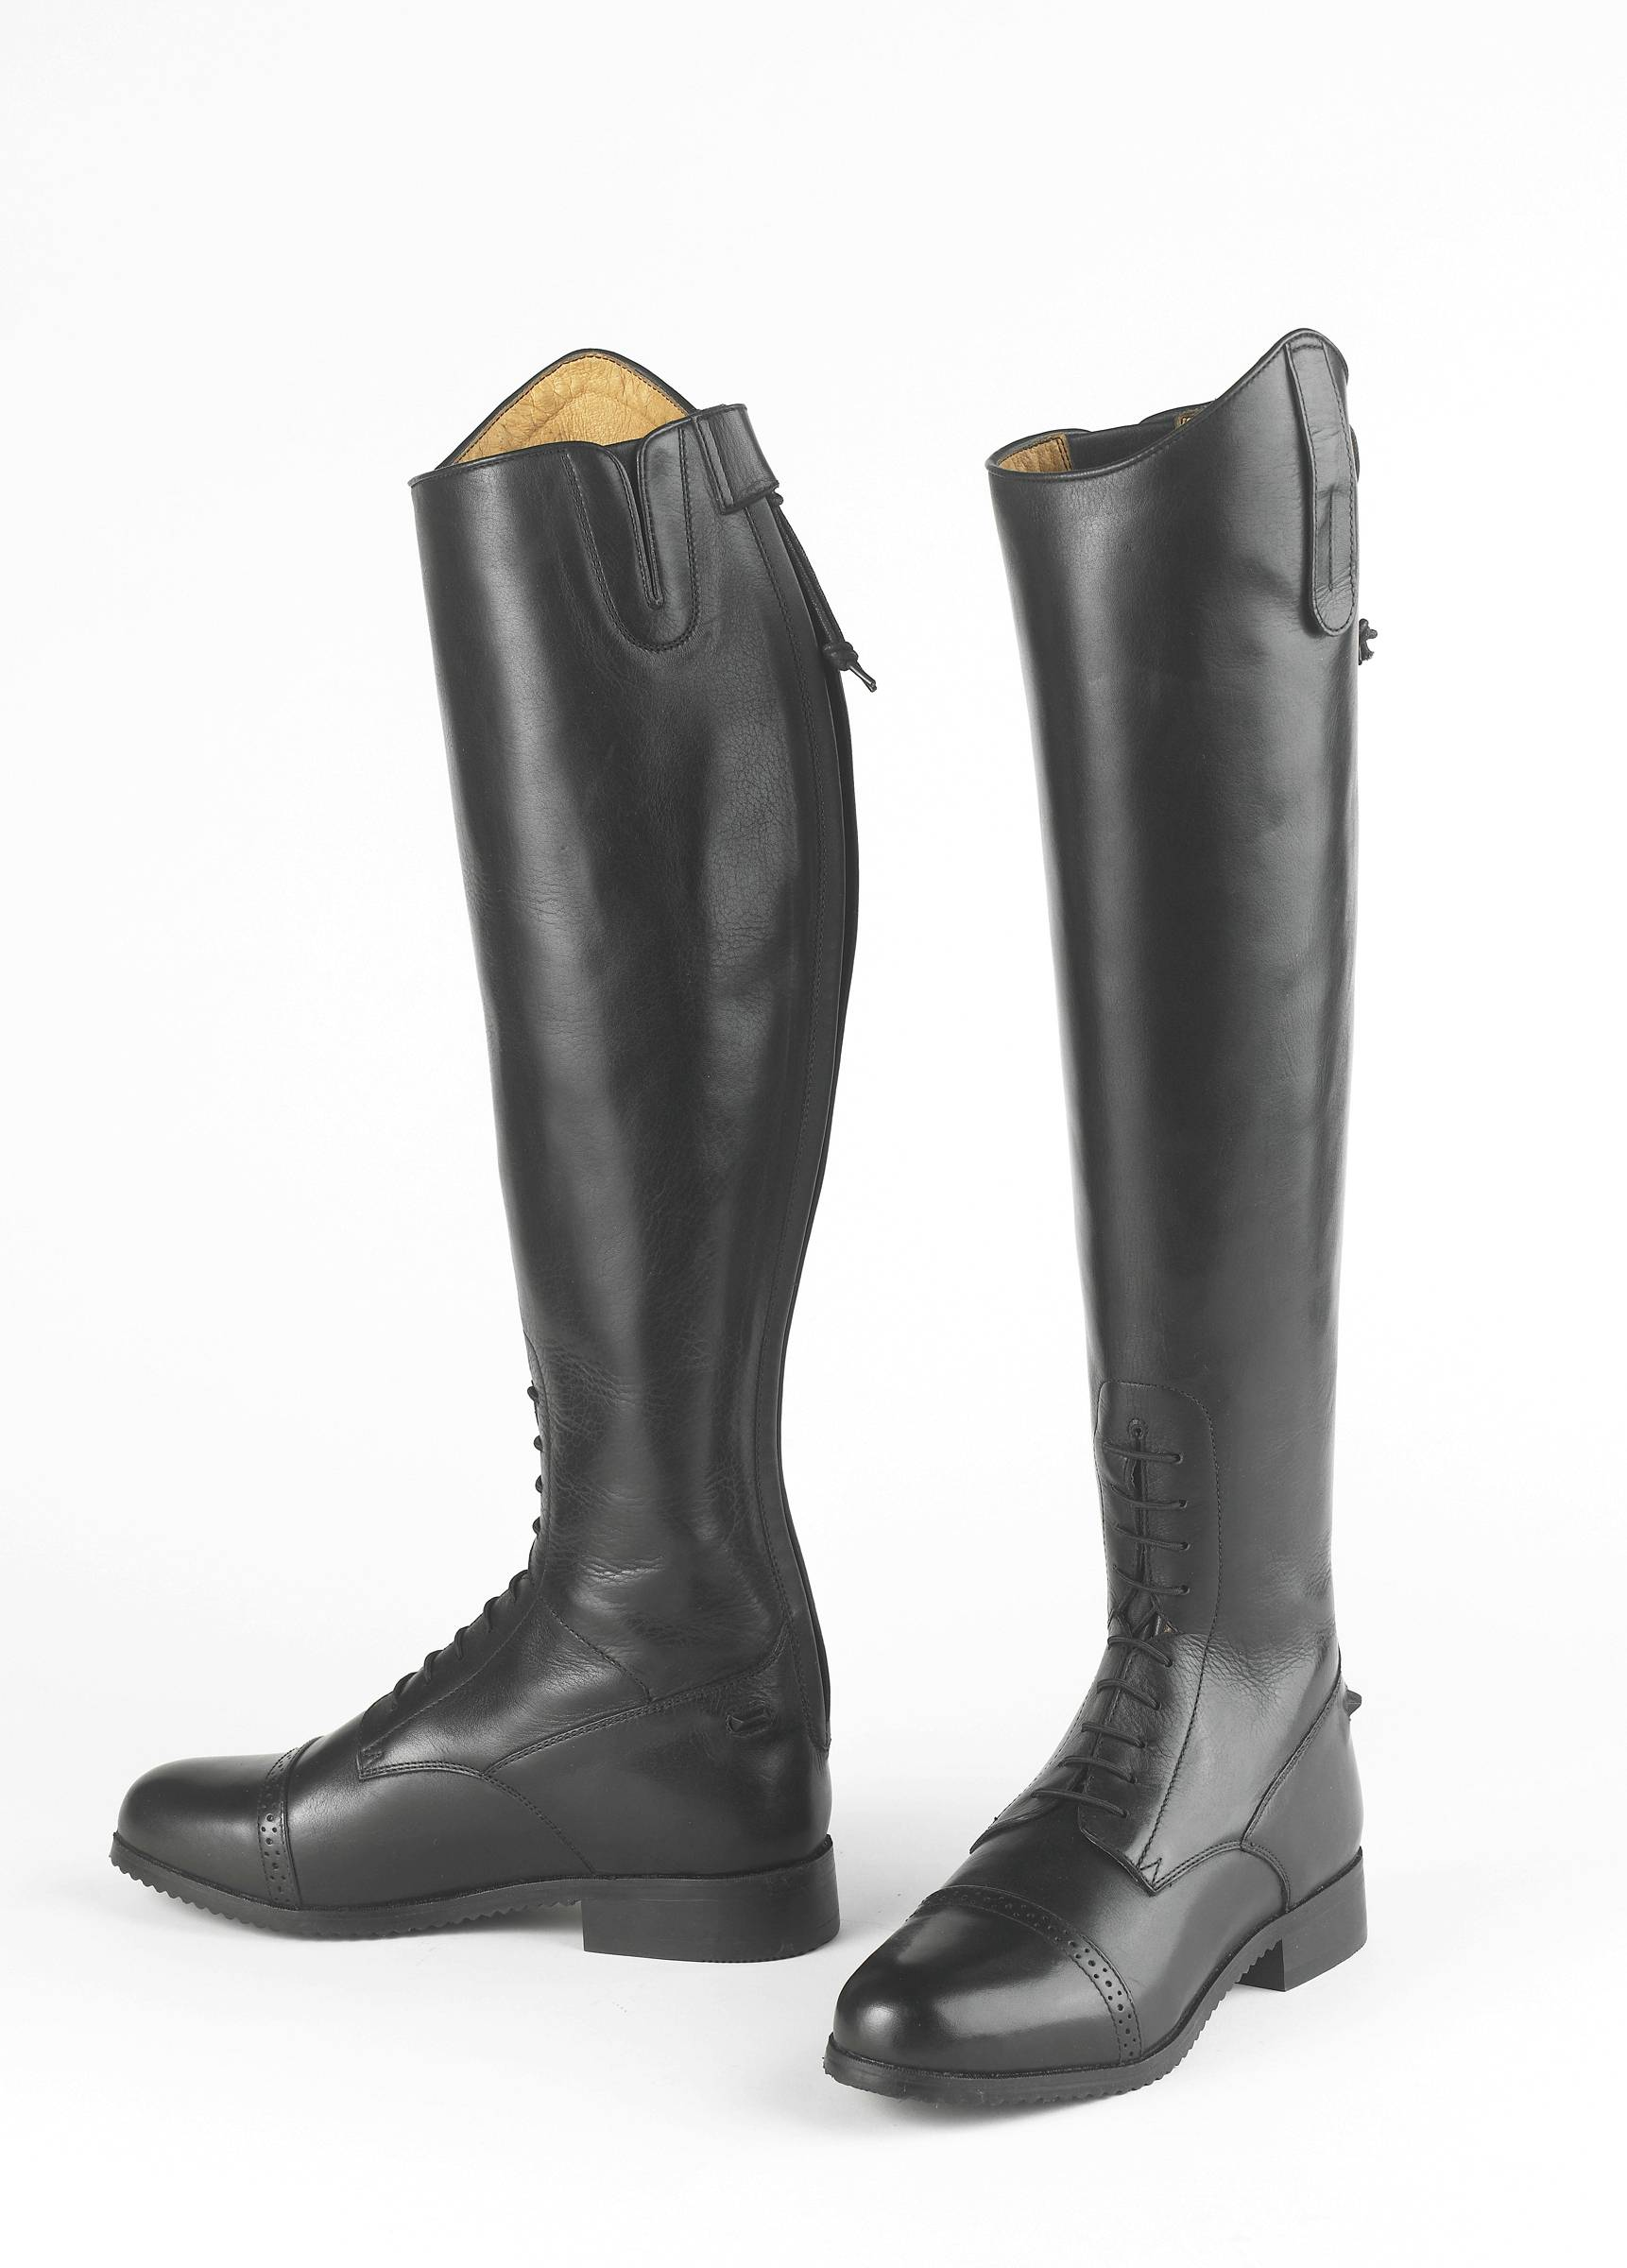 Ovation Ladies Tall Gold Pro Field Boots